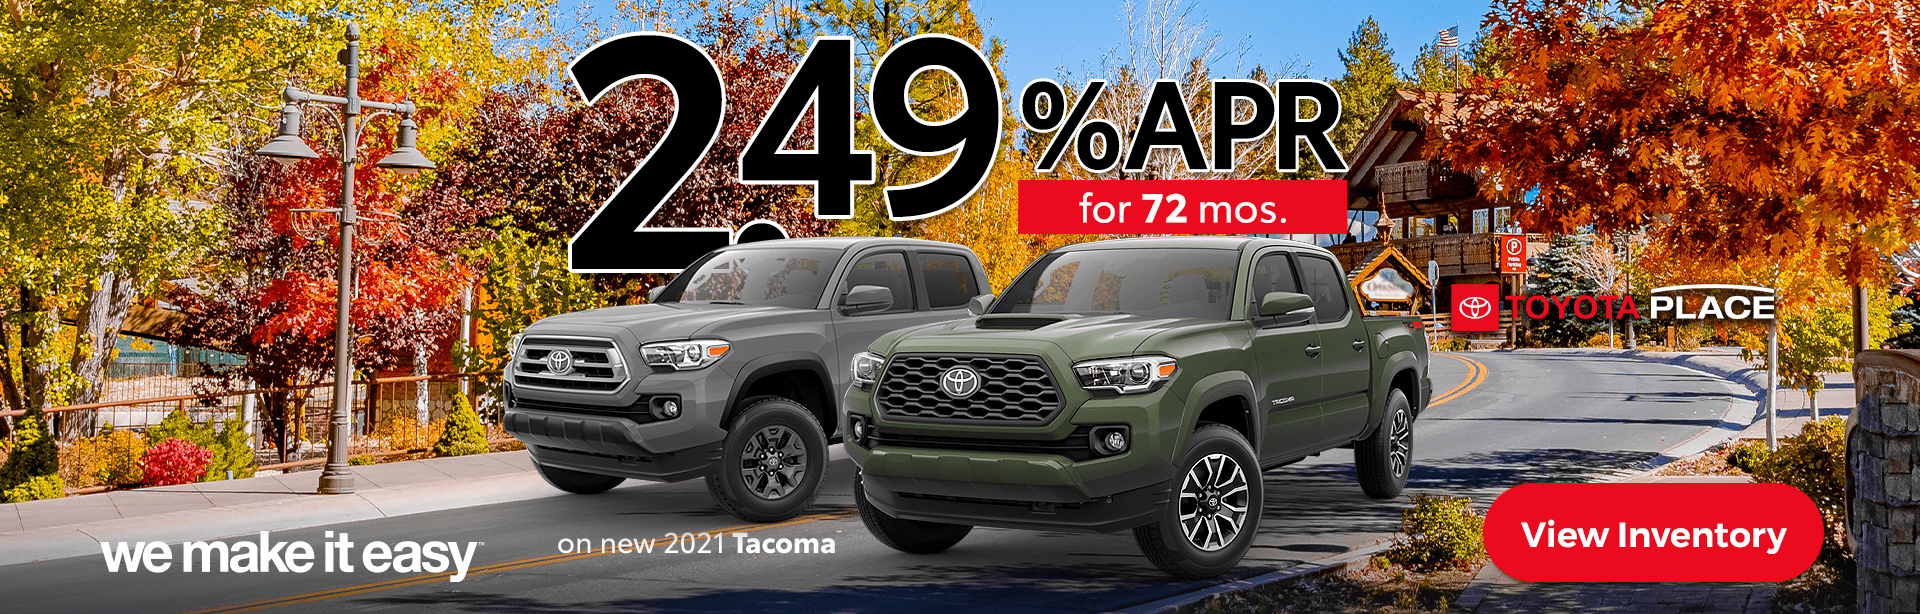 We_Make_it_Easy_Toyota_Place_2021_Tacoma